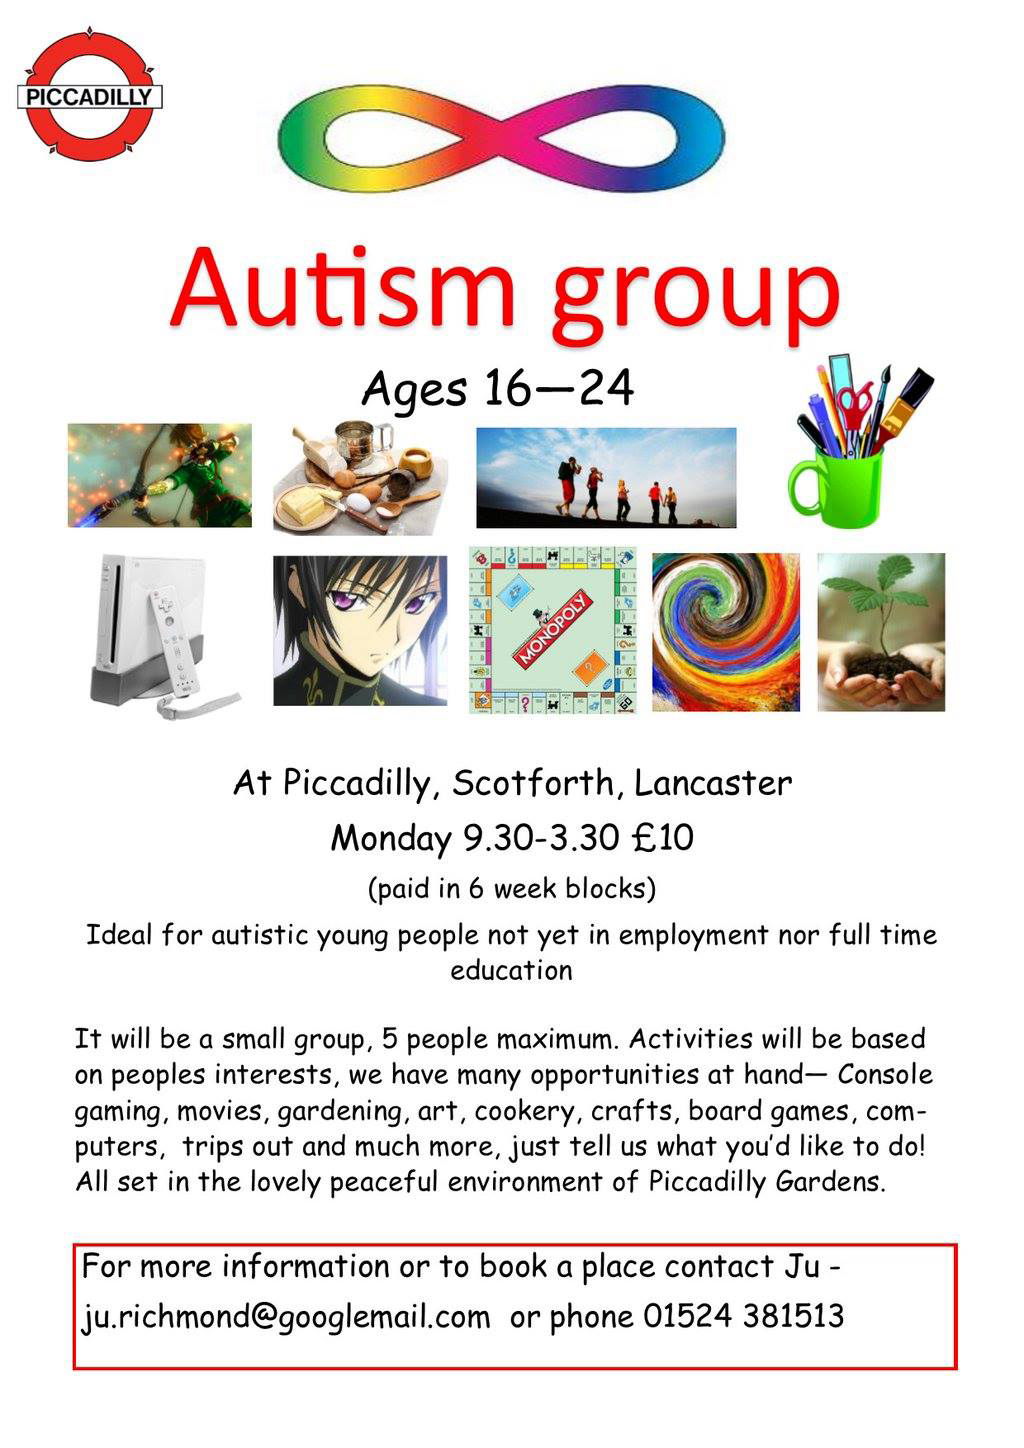 Picadilly Autism group